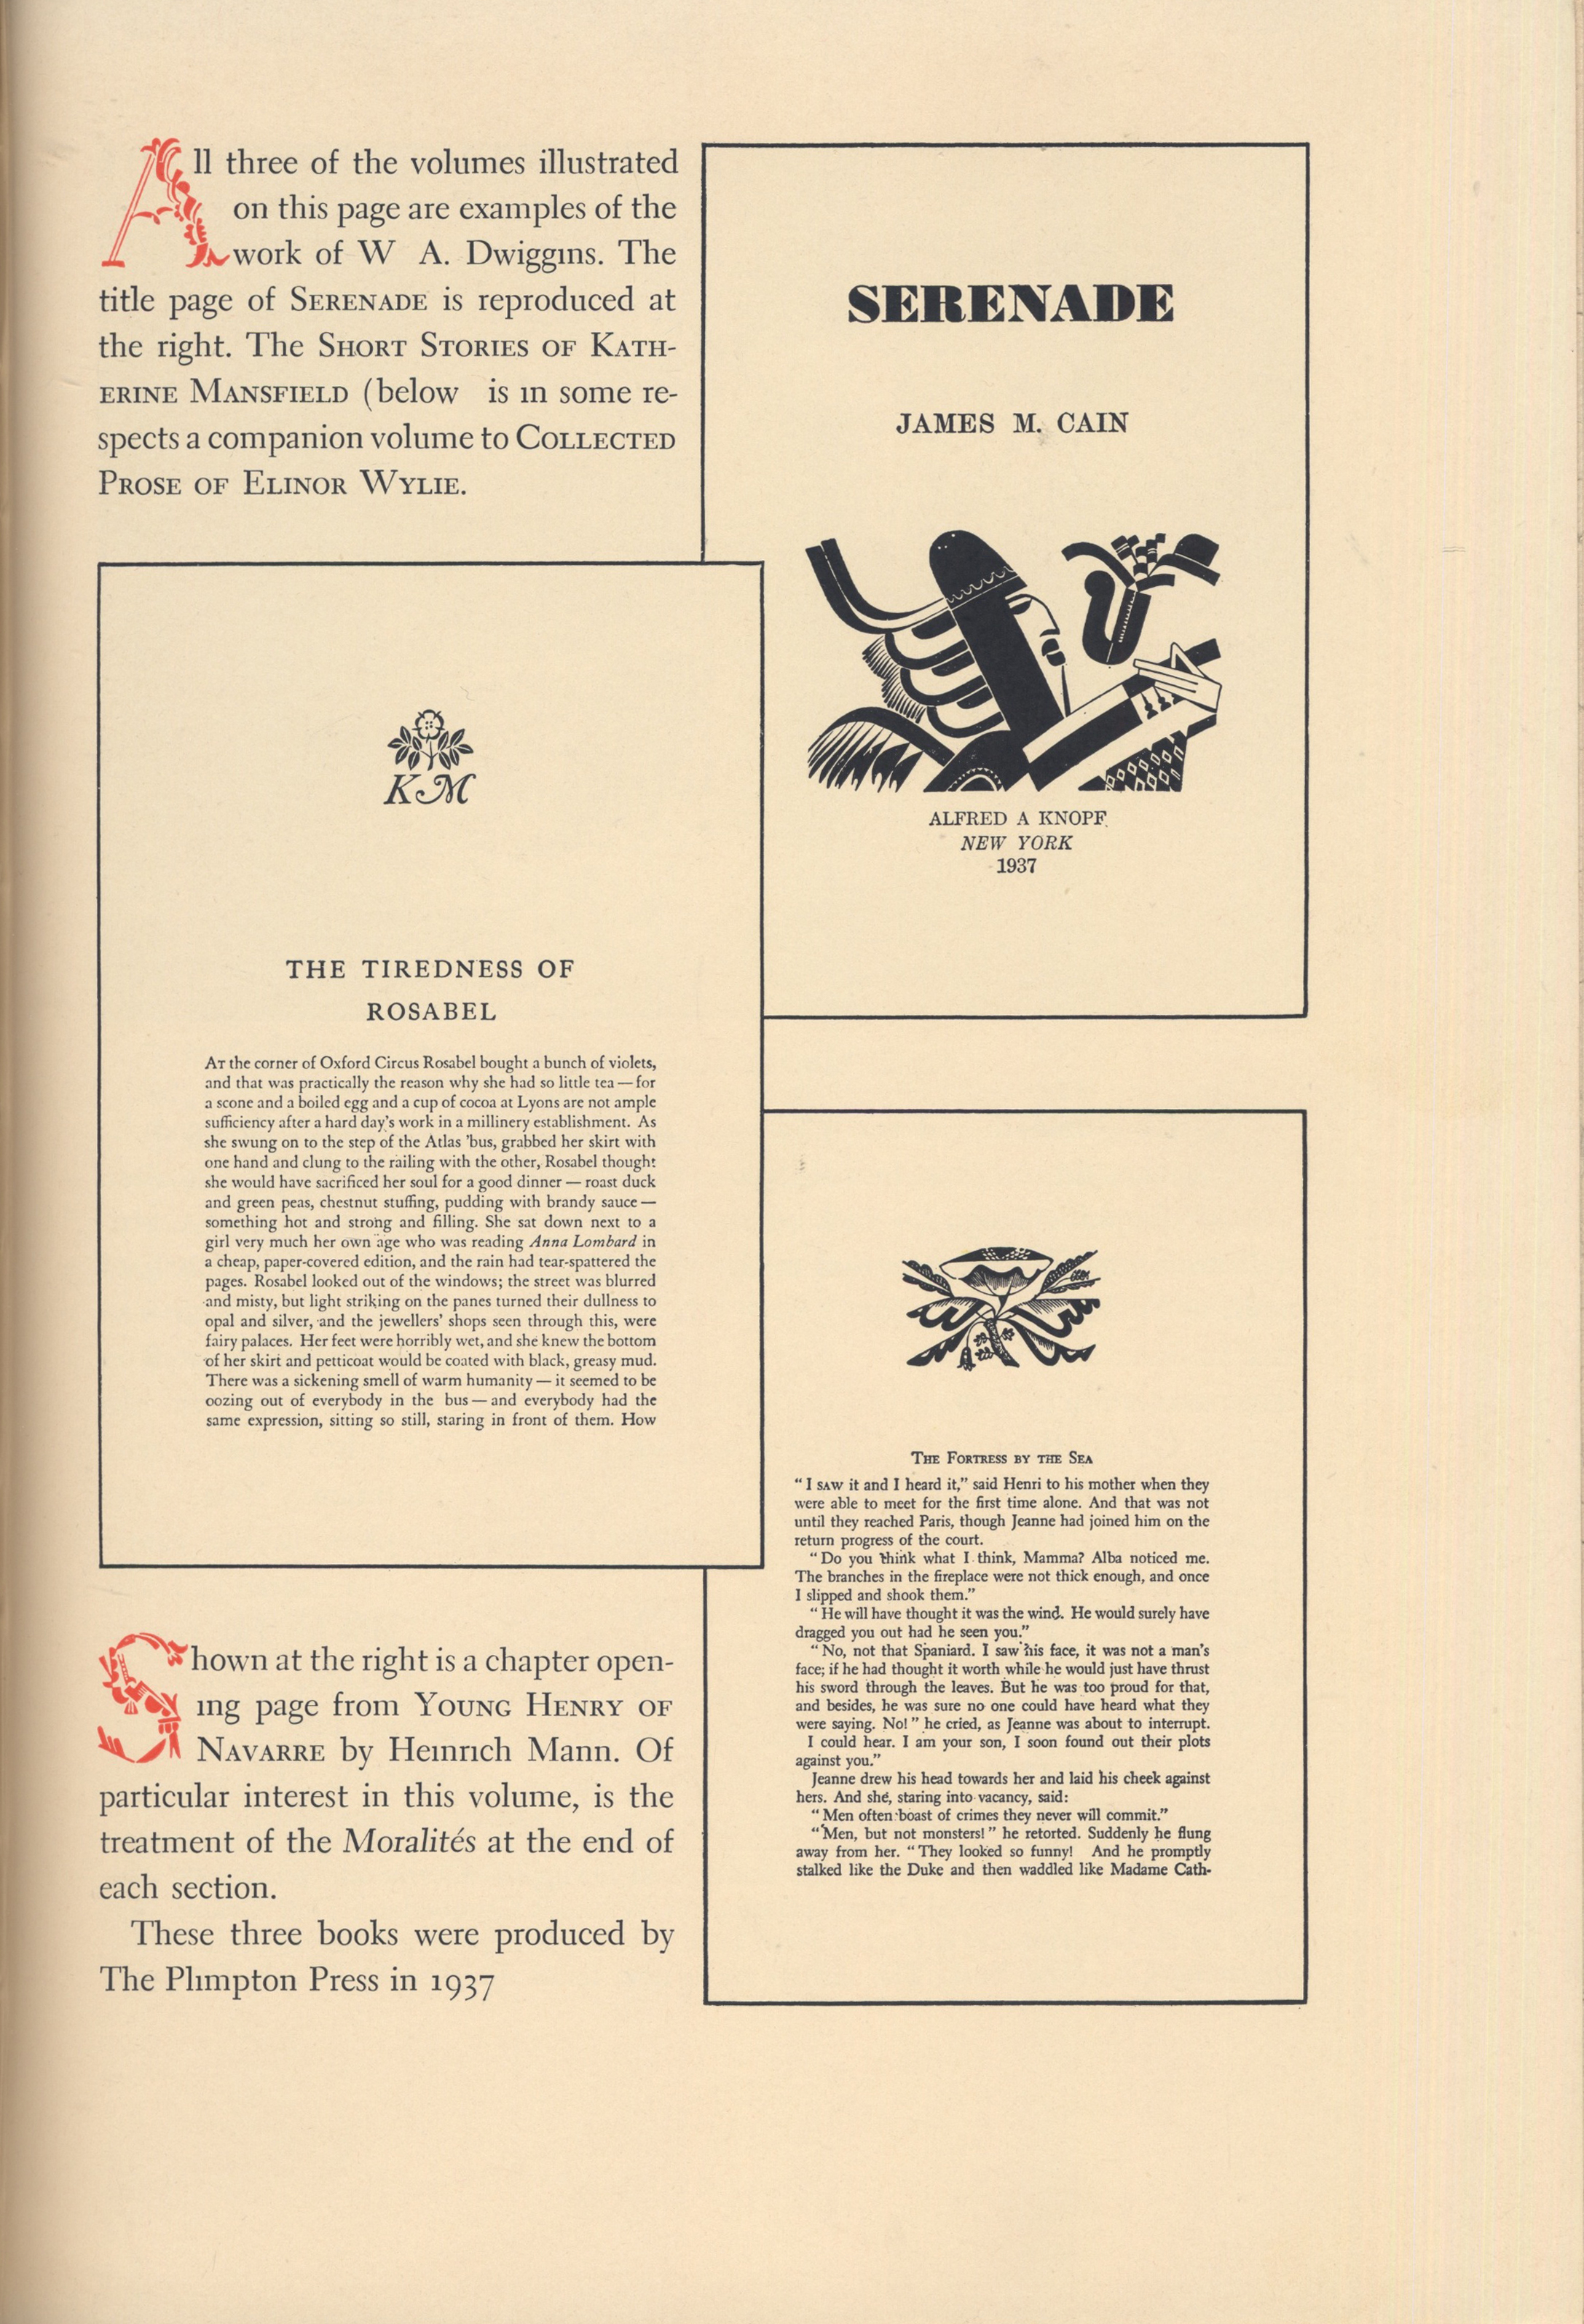 """Opening page of insert """"Some Borzoi Books Published 1927–1937 by Alfred A. Knopf"""" in The Annual of Bookmaking. Design probably by Sidney R. Jacobs. Borzoi by W.A. Dwiggins."""